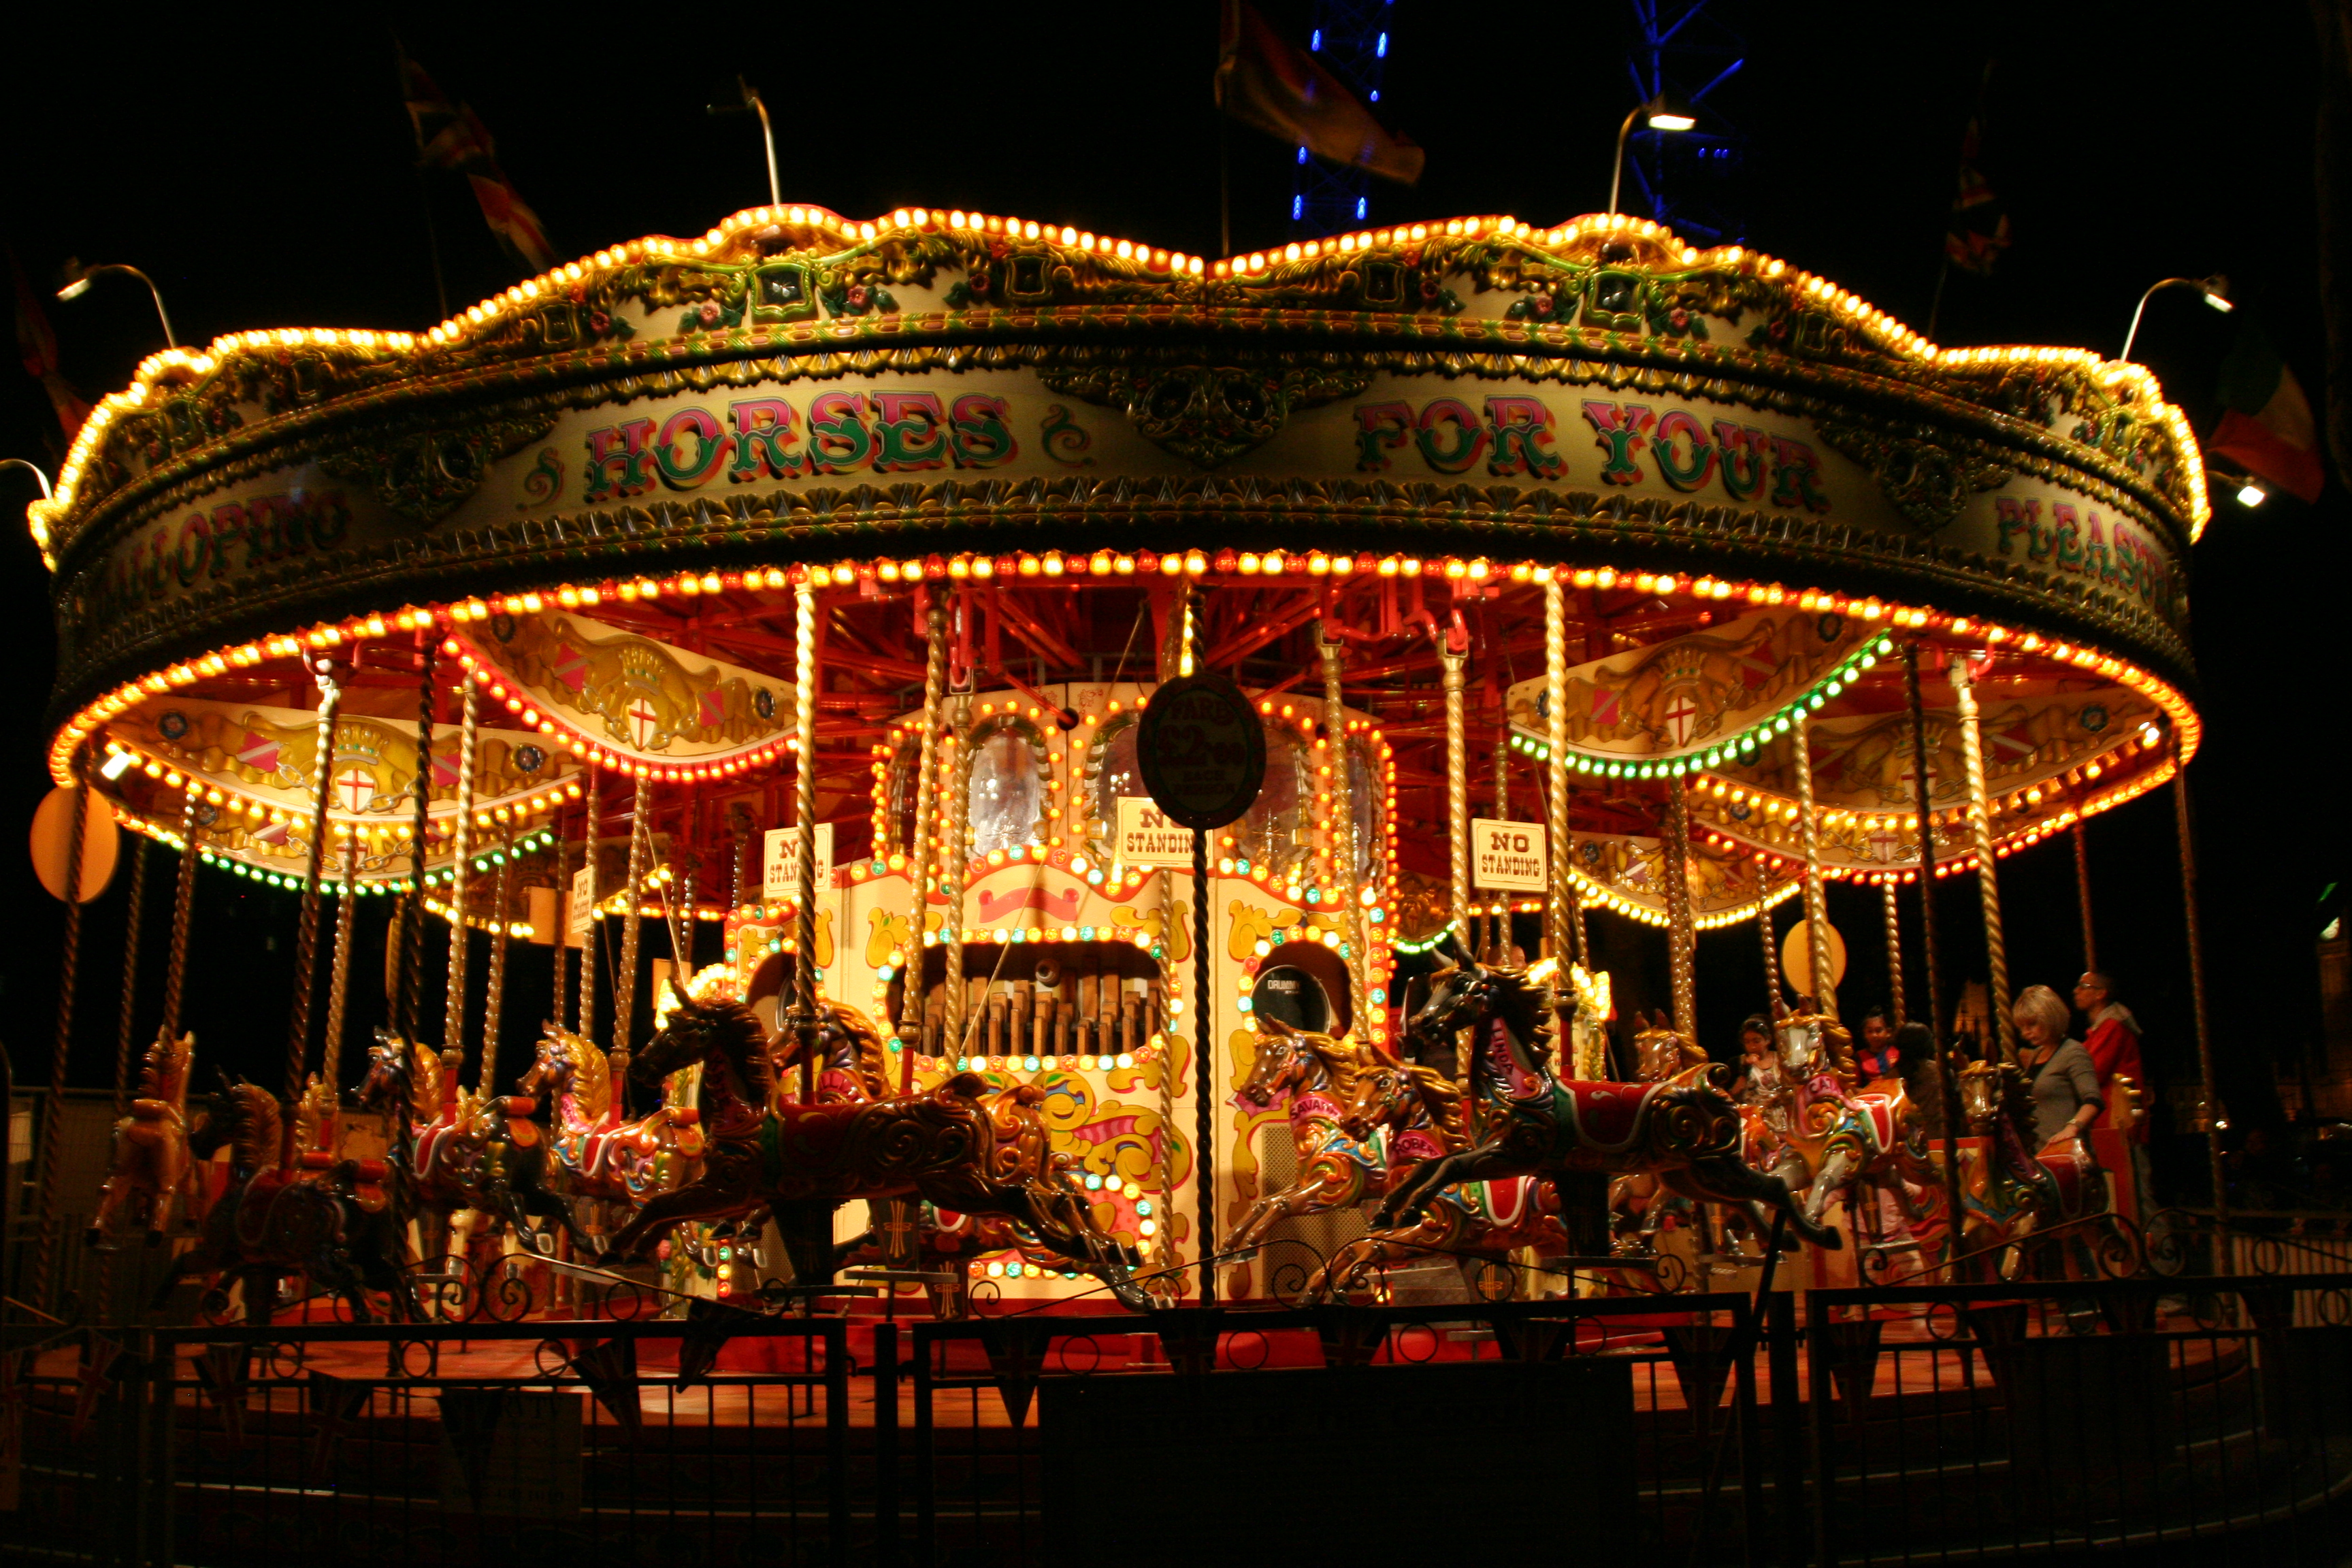 http://orig10.deviantart.net/4db1/f/2011/239/a/7/awesome_merry_go_round_by_bl4ckm4ch1n3-d480sgx.jpg